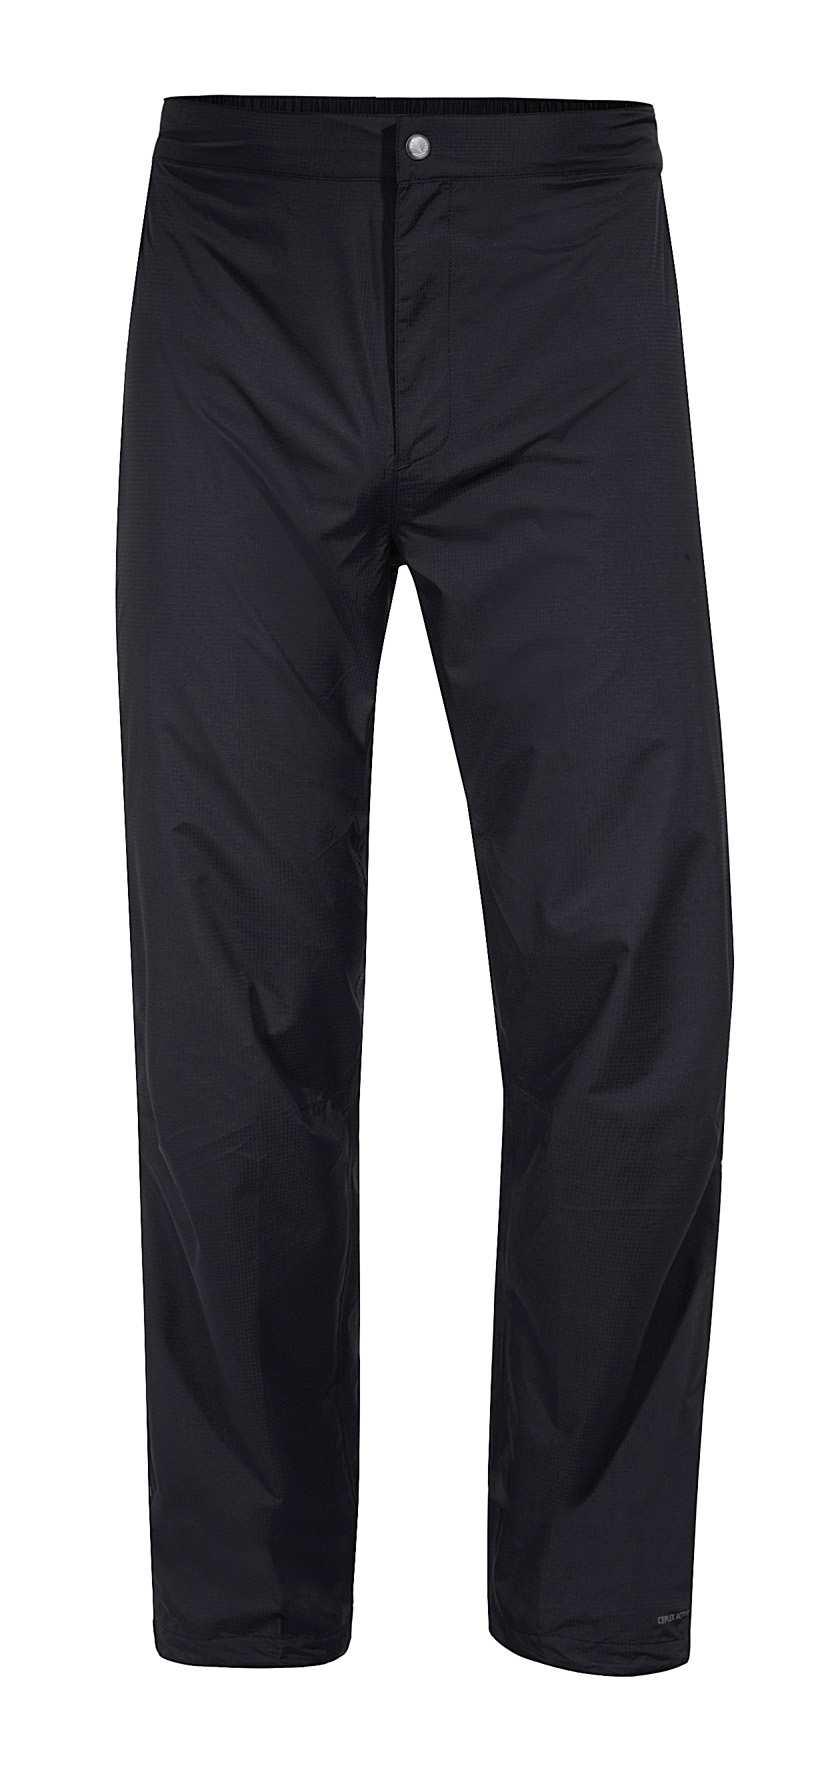 VAUDE Men´s Yaras Rain Pants black Größe S - schneider-sports